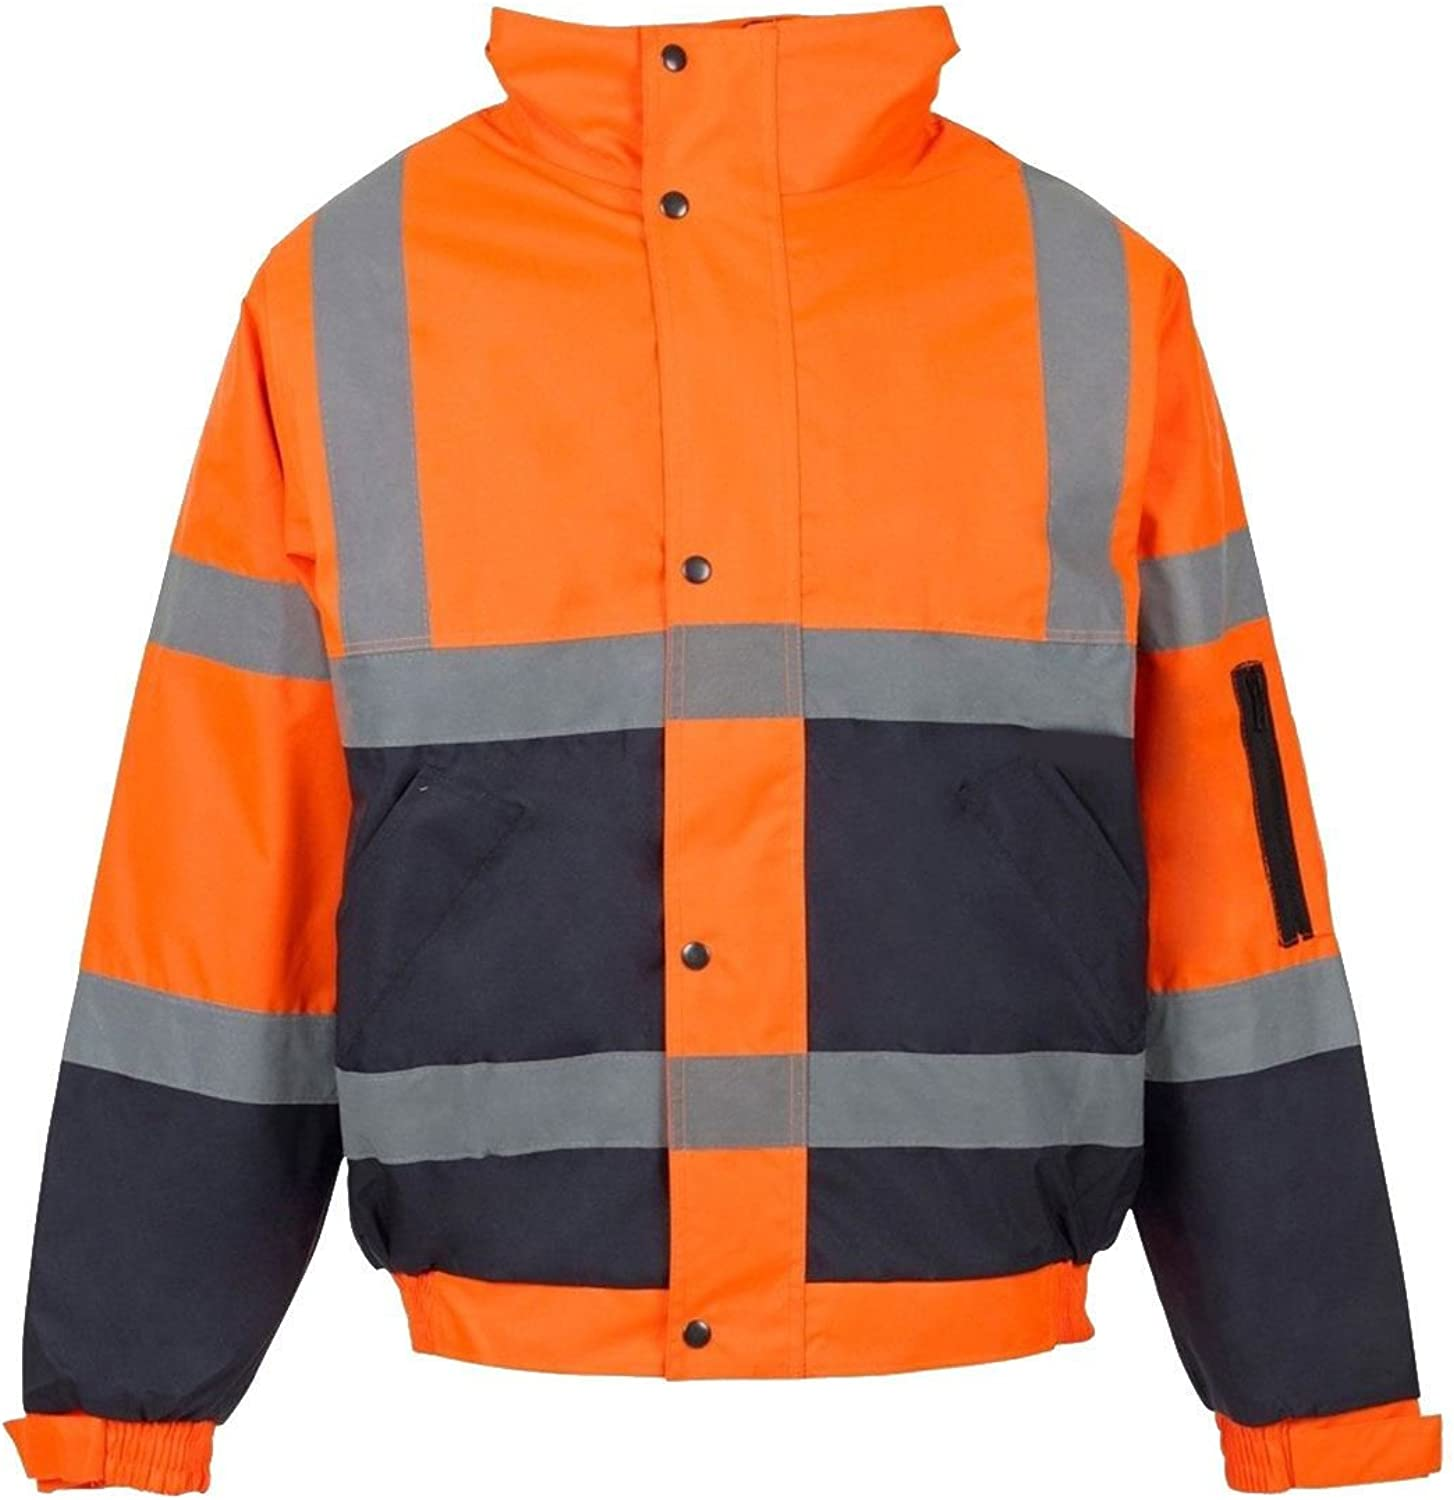 21FASHION Mens Hi Vis Visibility Two Tone Bomber Jacket Adults Waterproof Security Coat Small4XLarge